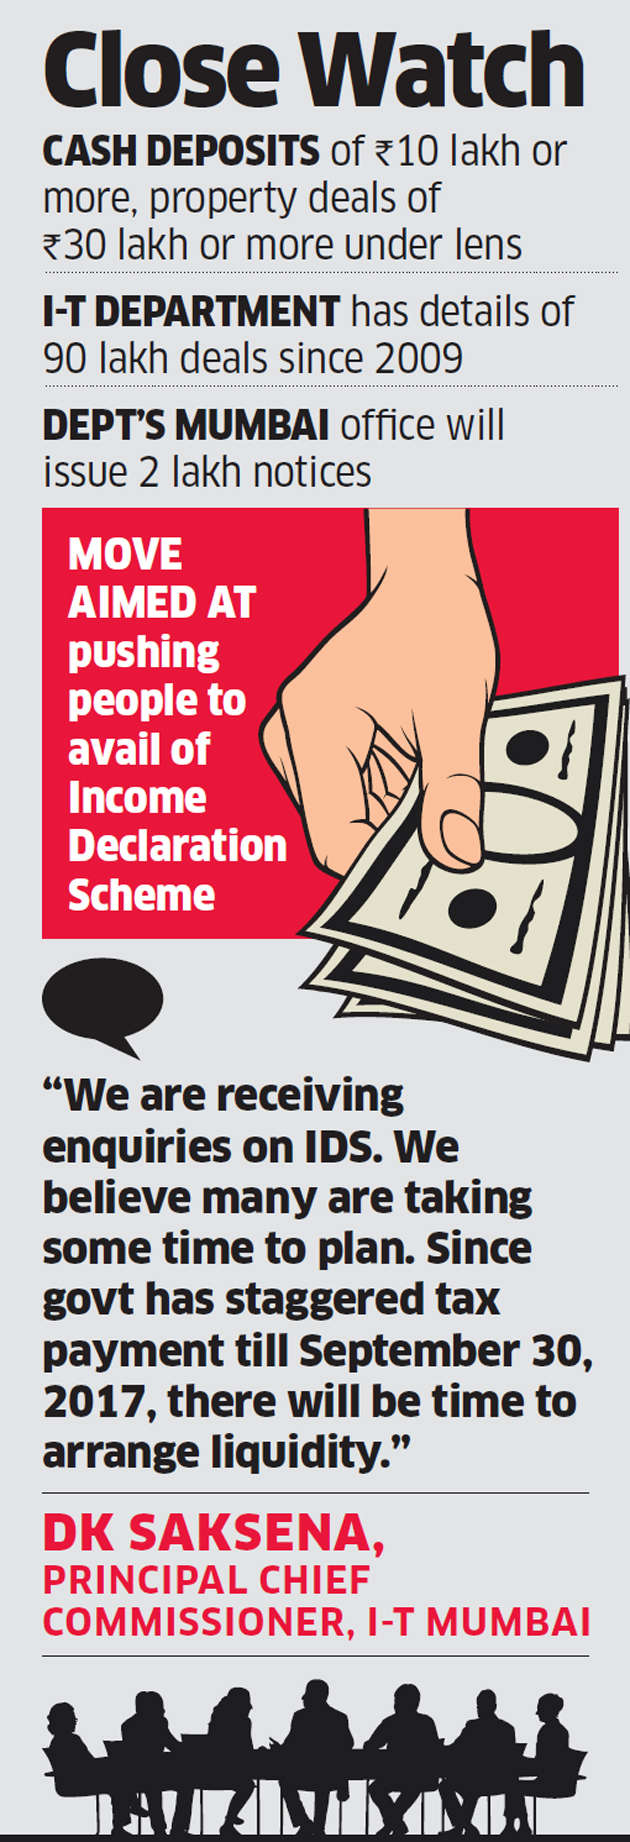 Lens On Cash Deposits, Property Deals: Incometax Office To Issue 7 Lakh  Notices